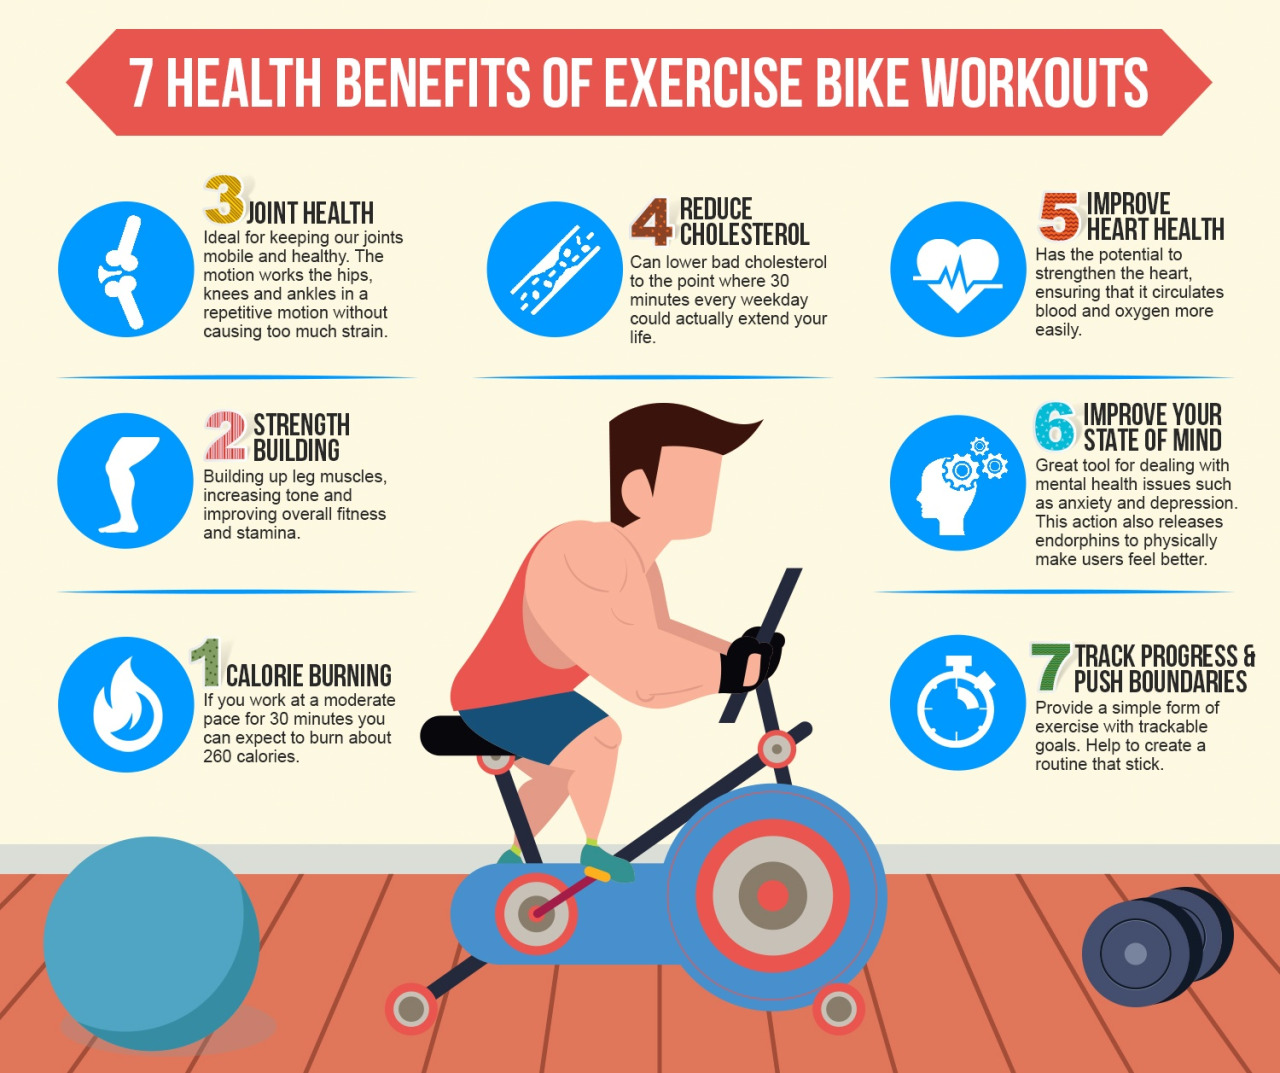 7 Health Benefits of Exercise Bike Workout